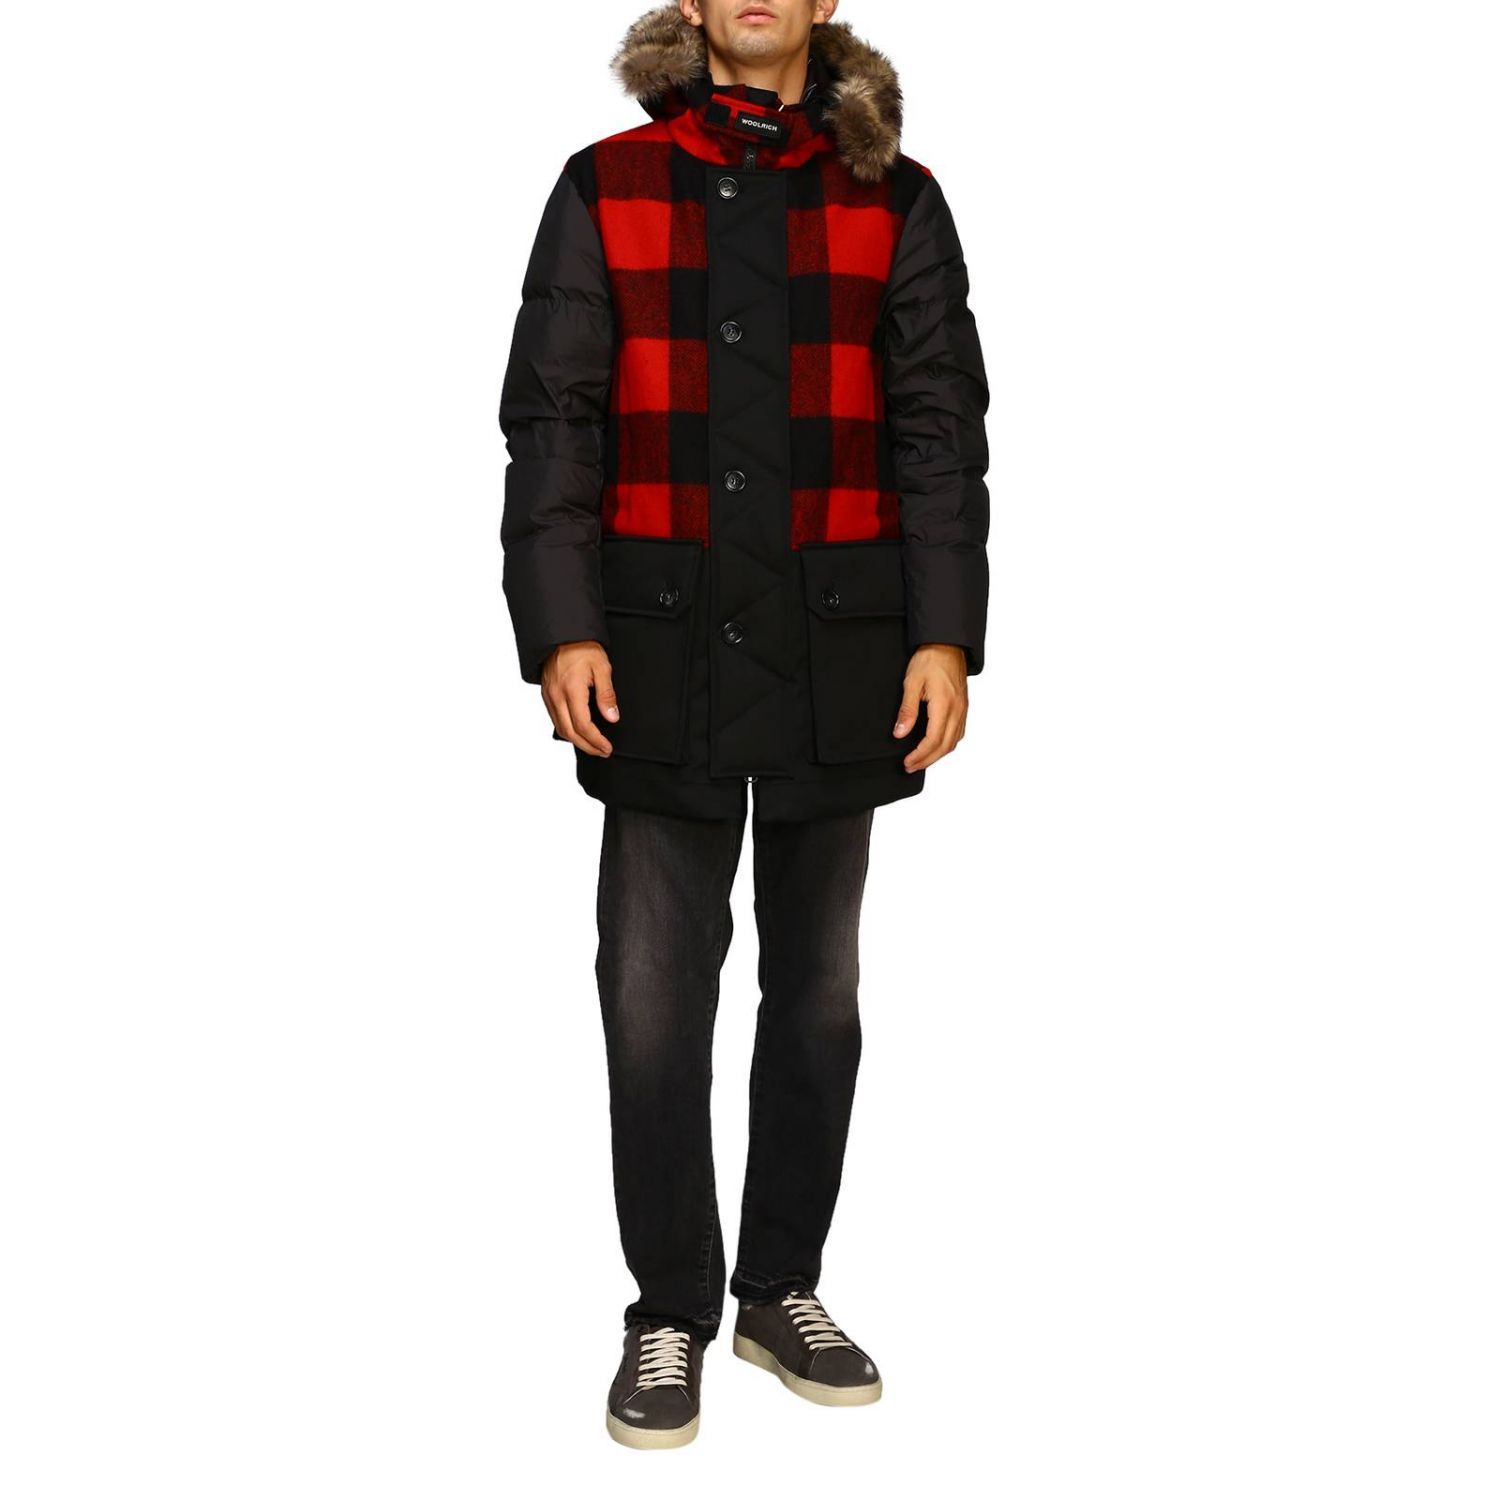 Giacca Woolrich: Giacca uomo Woolrich nero 1